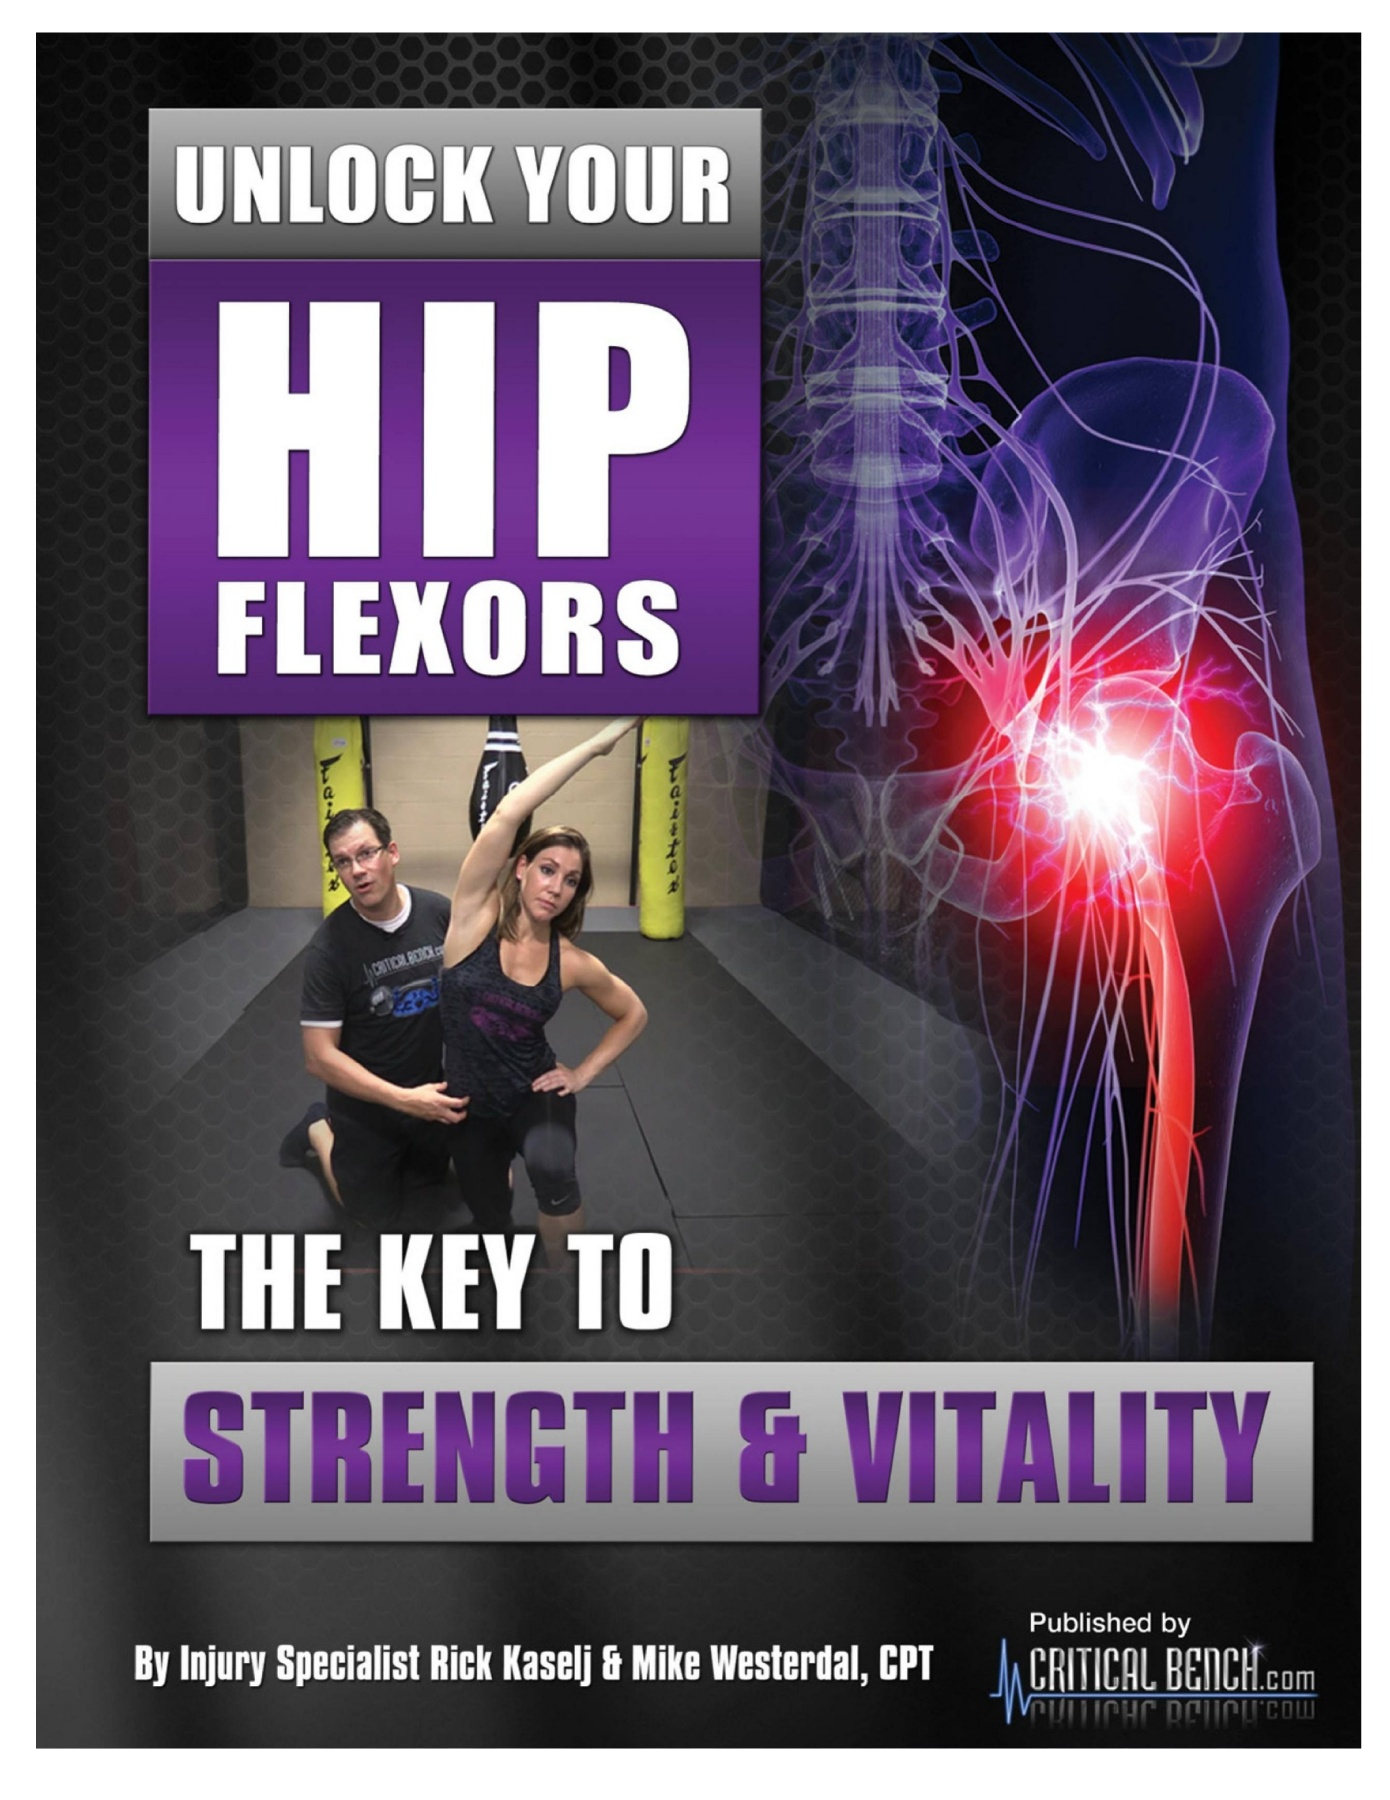 What Causes Tight Hip Flexor Muscles